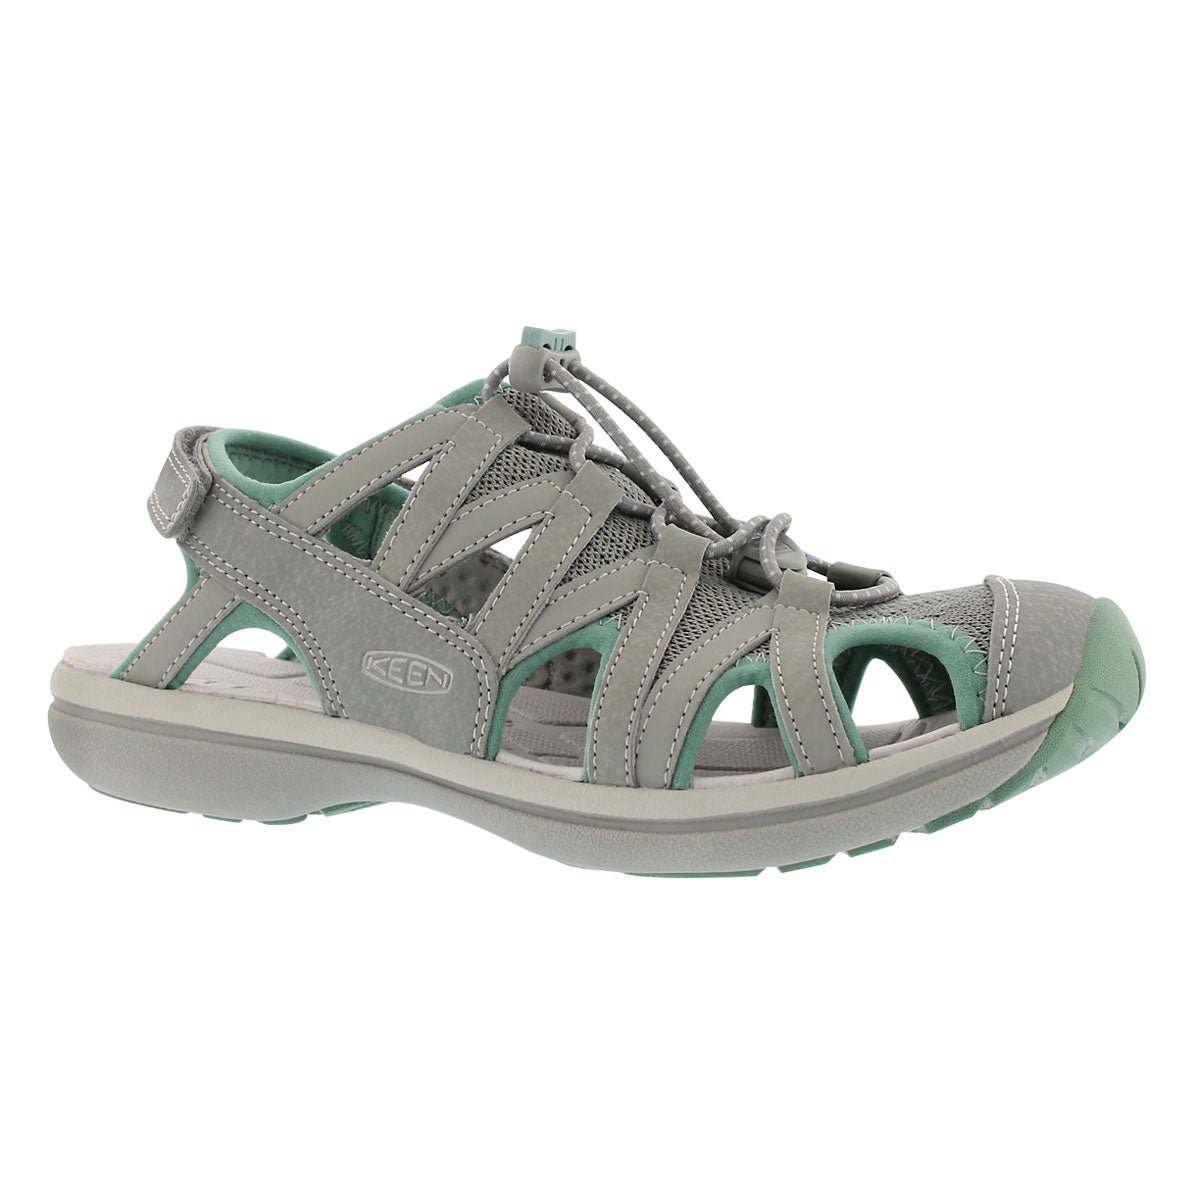 Women's SAGE neutral/grey sport sandals